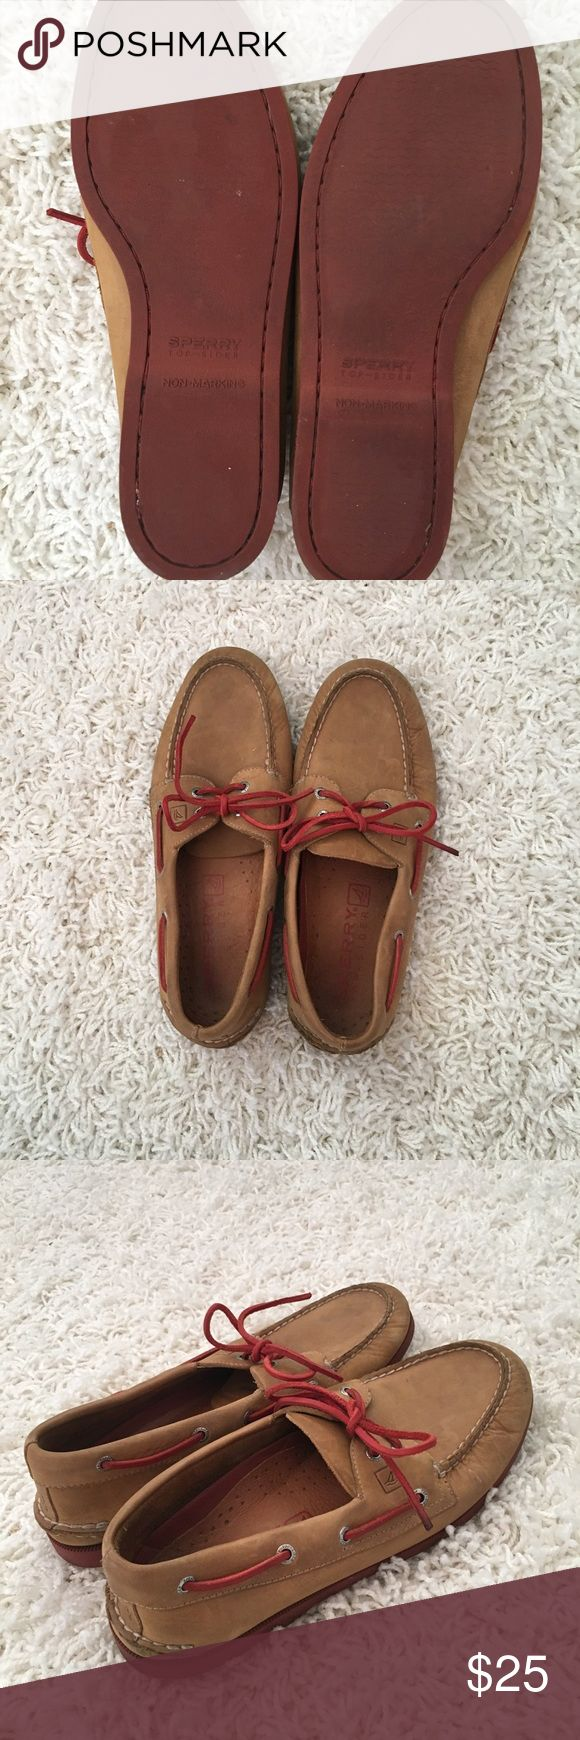 Men's Original Sperry Top-Siders Size 11.5 Gently worn.  Tan and Red.  Size 11.5. Leather. Sperry Top-Sider Shoes Boat Shoes